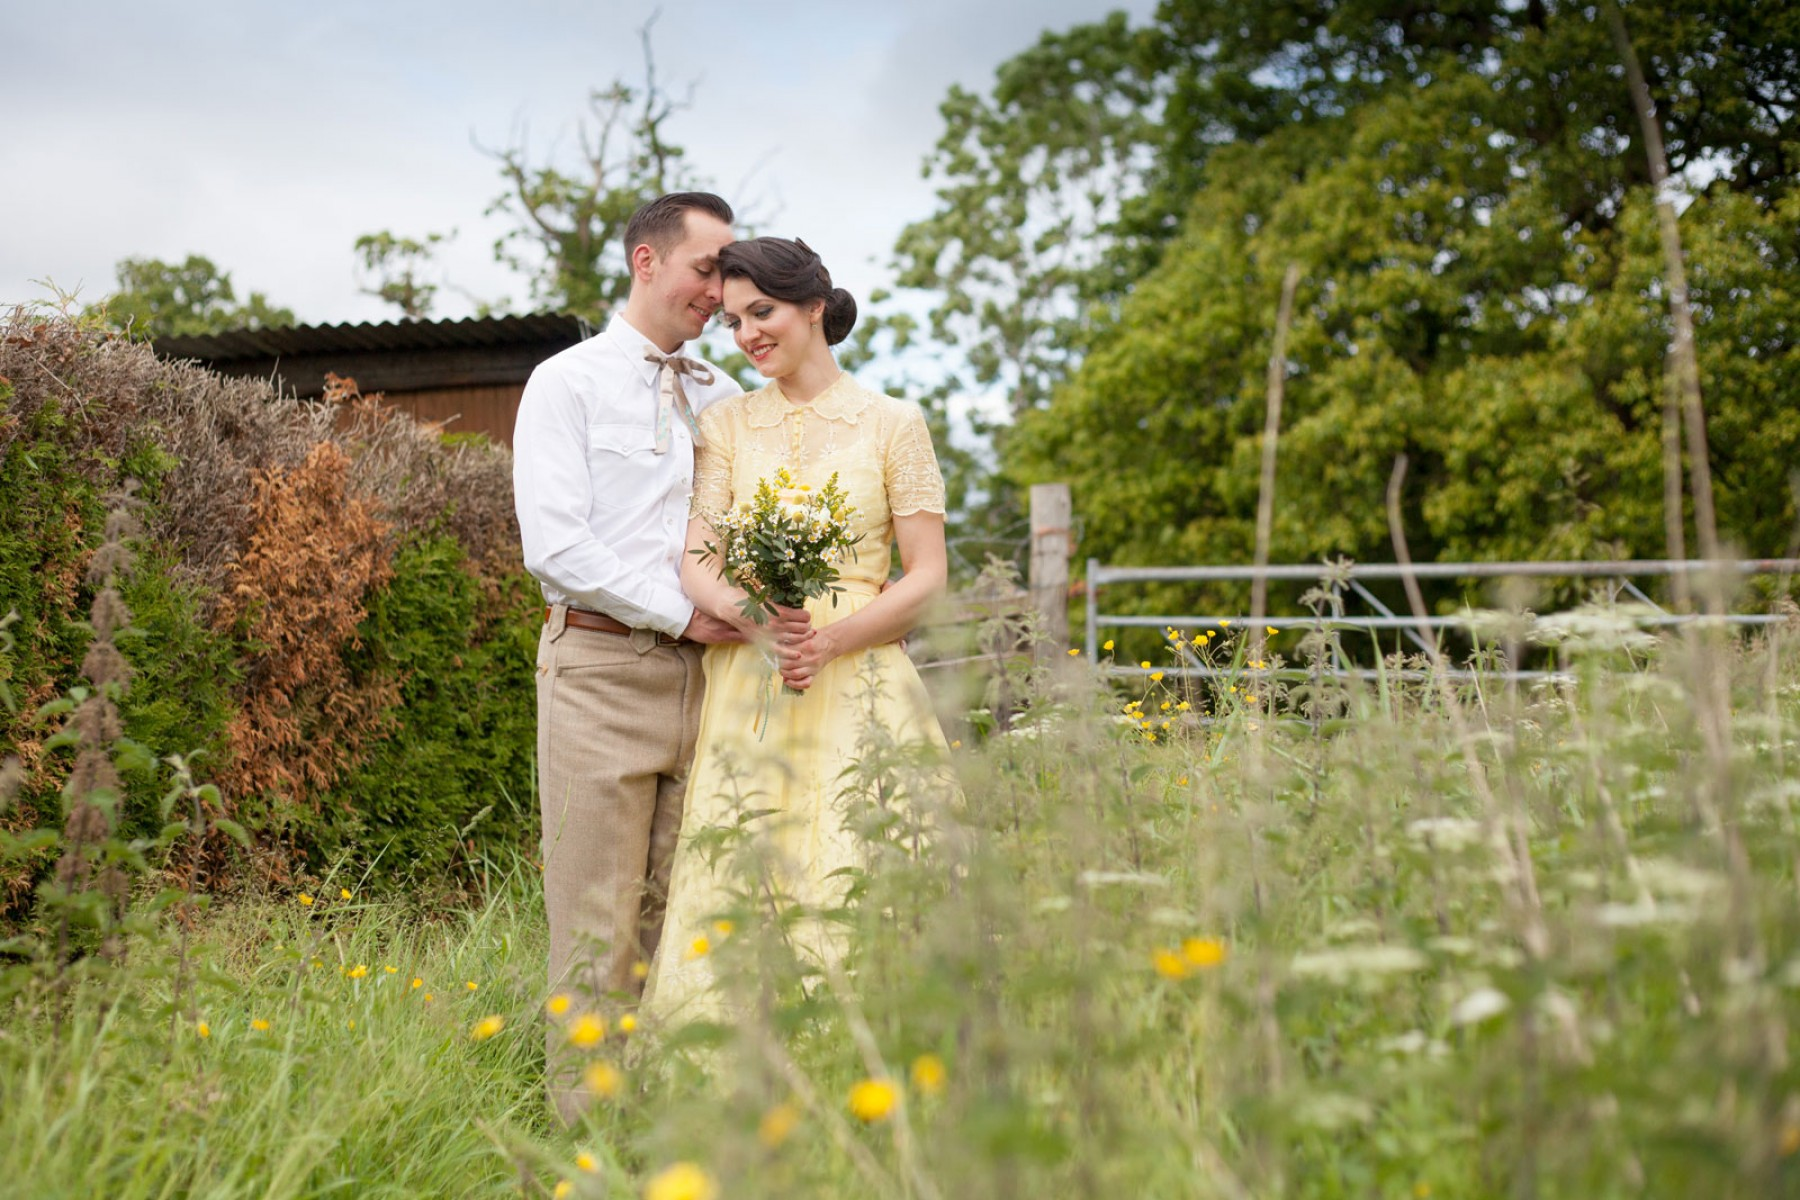 Lancashire wedding photographer Kendal in Cumbria wedding